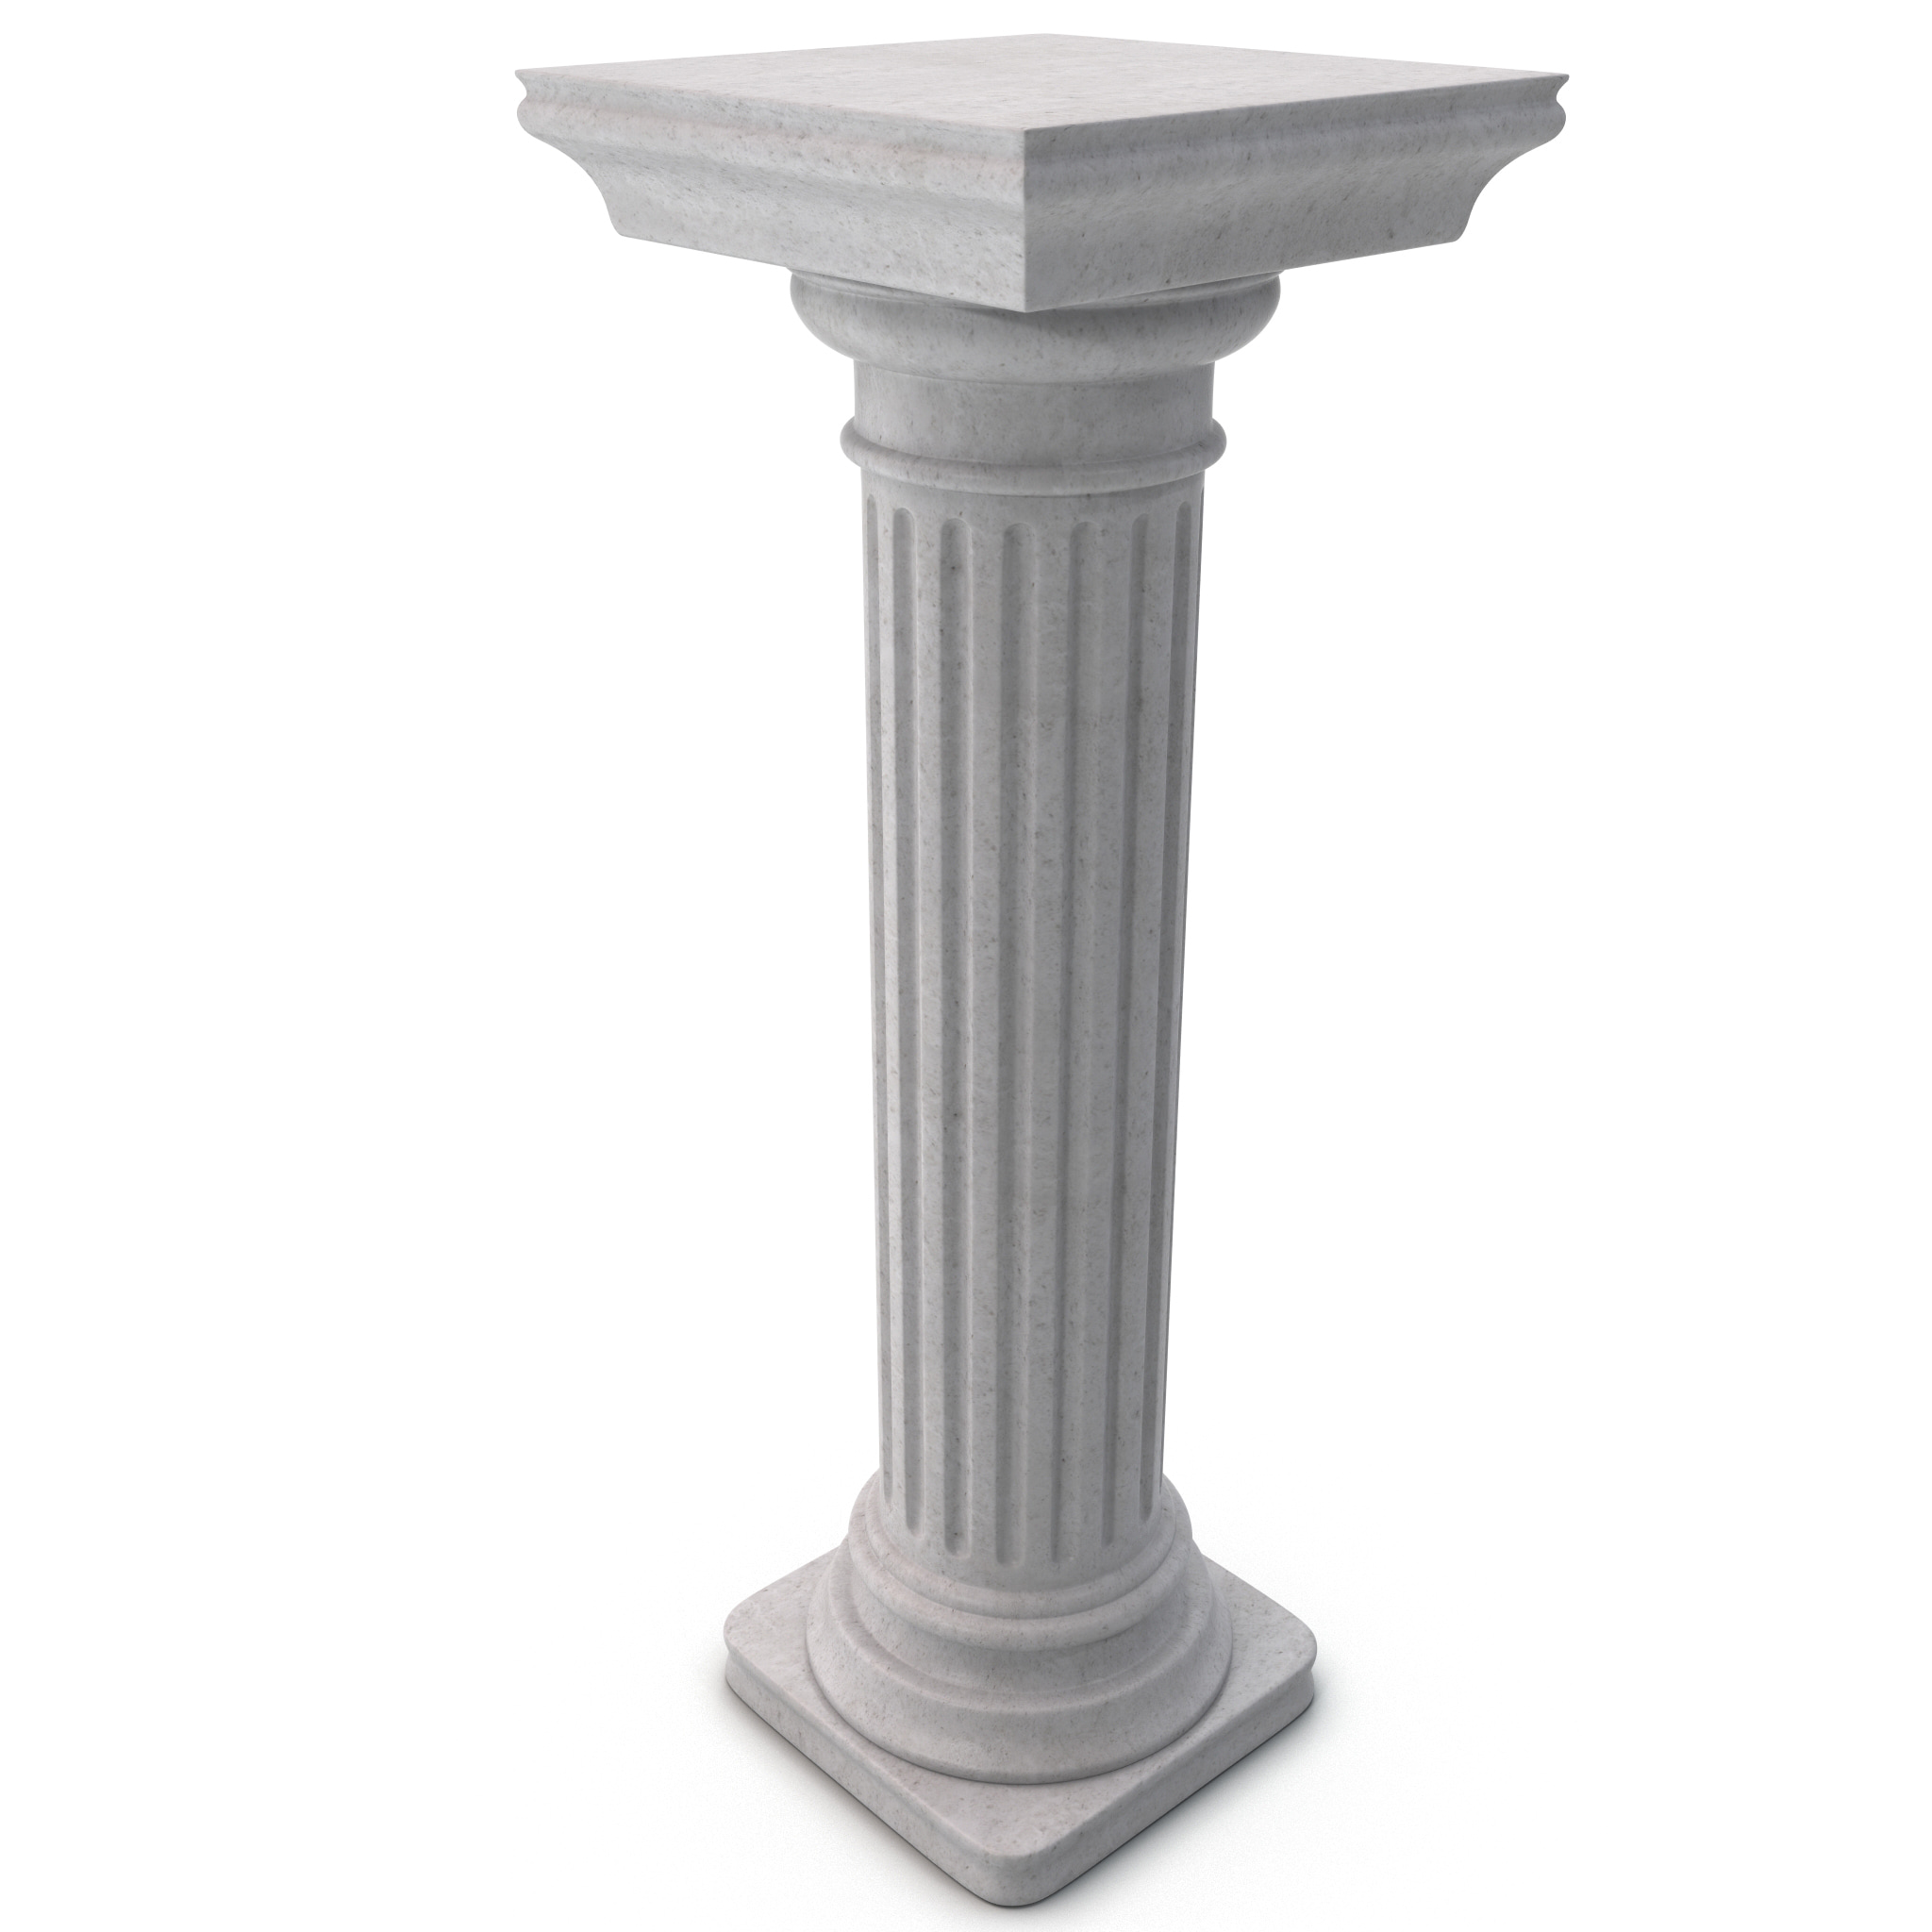 The Gallery For > Roman Pillar Png. Online Interior Decorating. Wall Mirror Sets Decorative. Decoration Bedroom. How To Decorate My Living Room. Burlap Decorative Pillows. Olympic Party Decorations. Decorative Bathroom Fans With Lights. Decorative Kitchen Accessories